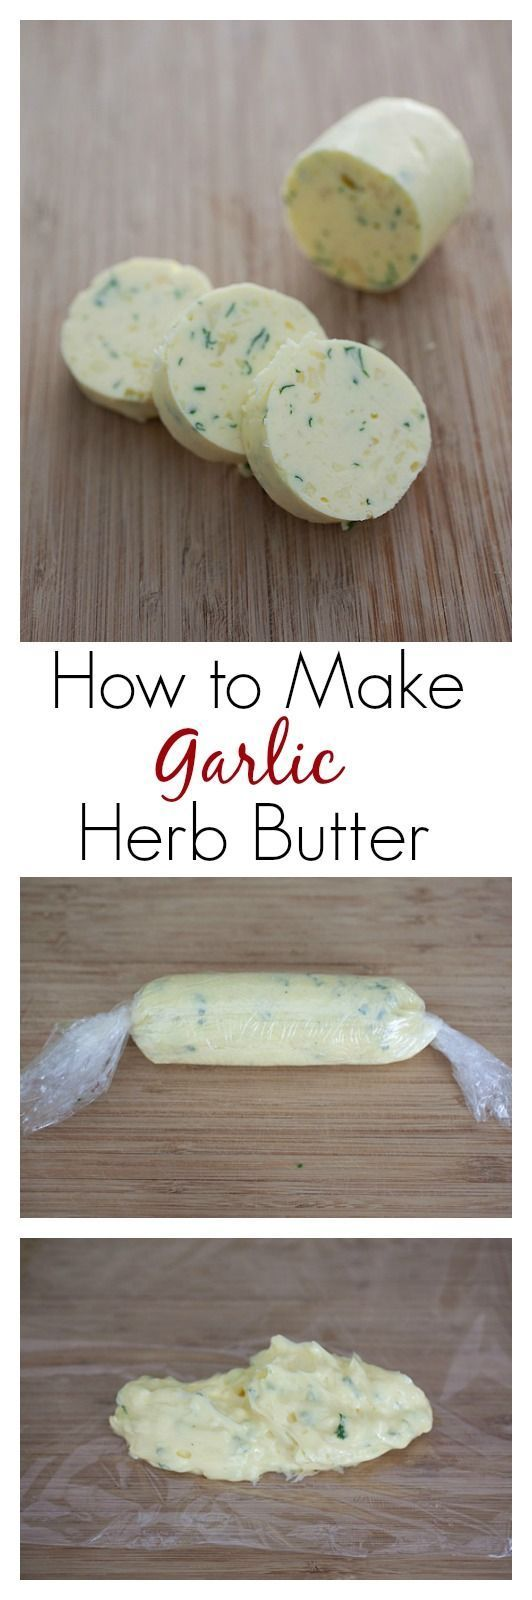 How to make Garlic Herb Butter. Learn the picture step-by-step, so easy to make and you can make so many dishes from it |